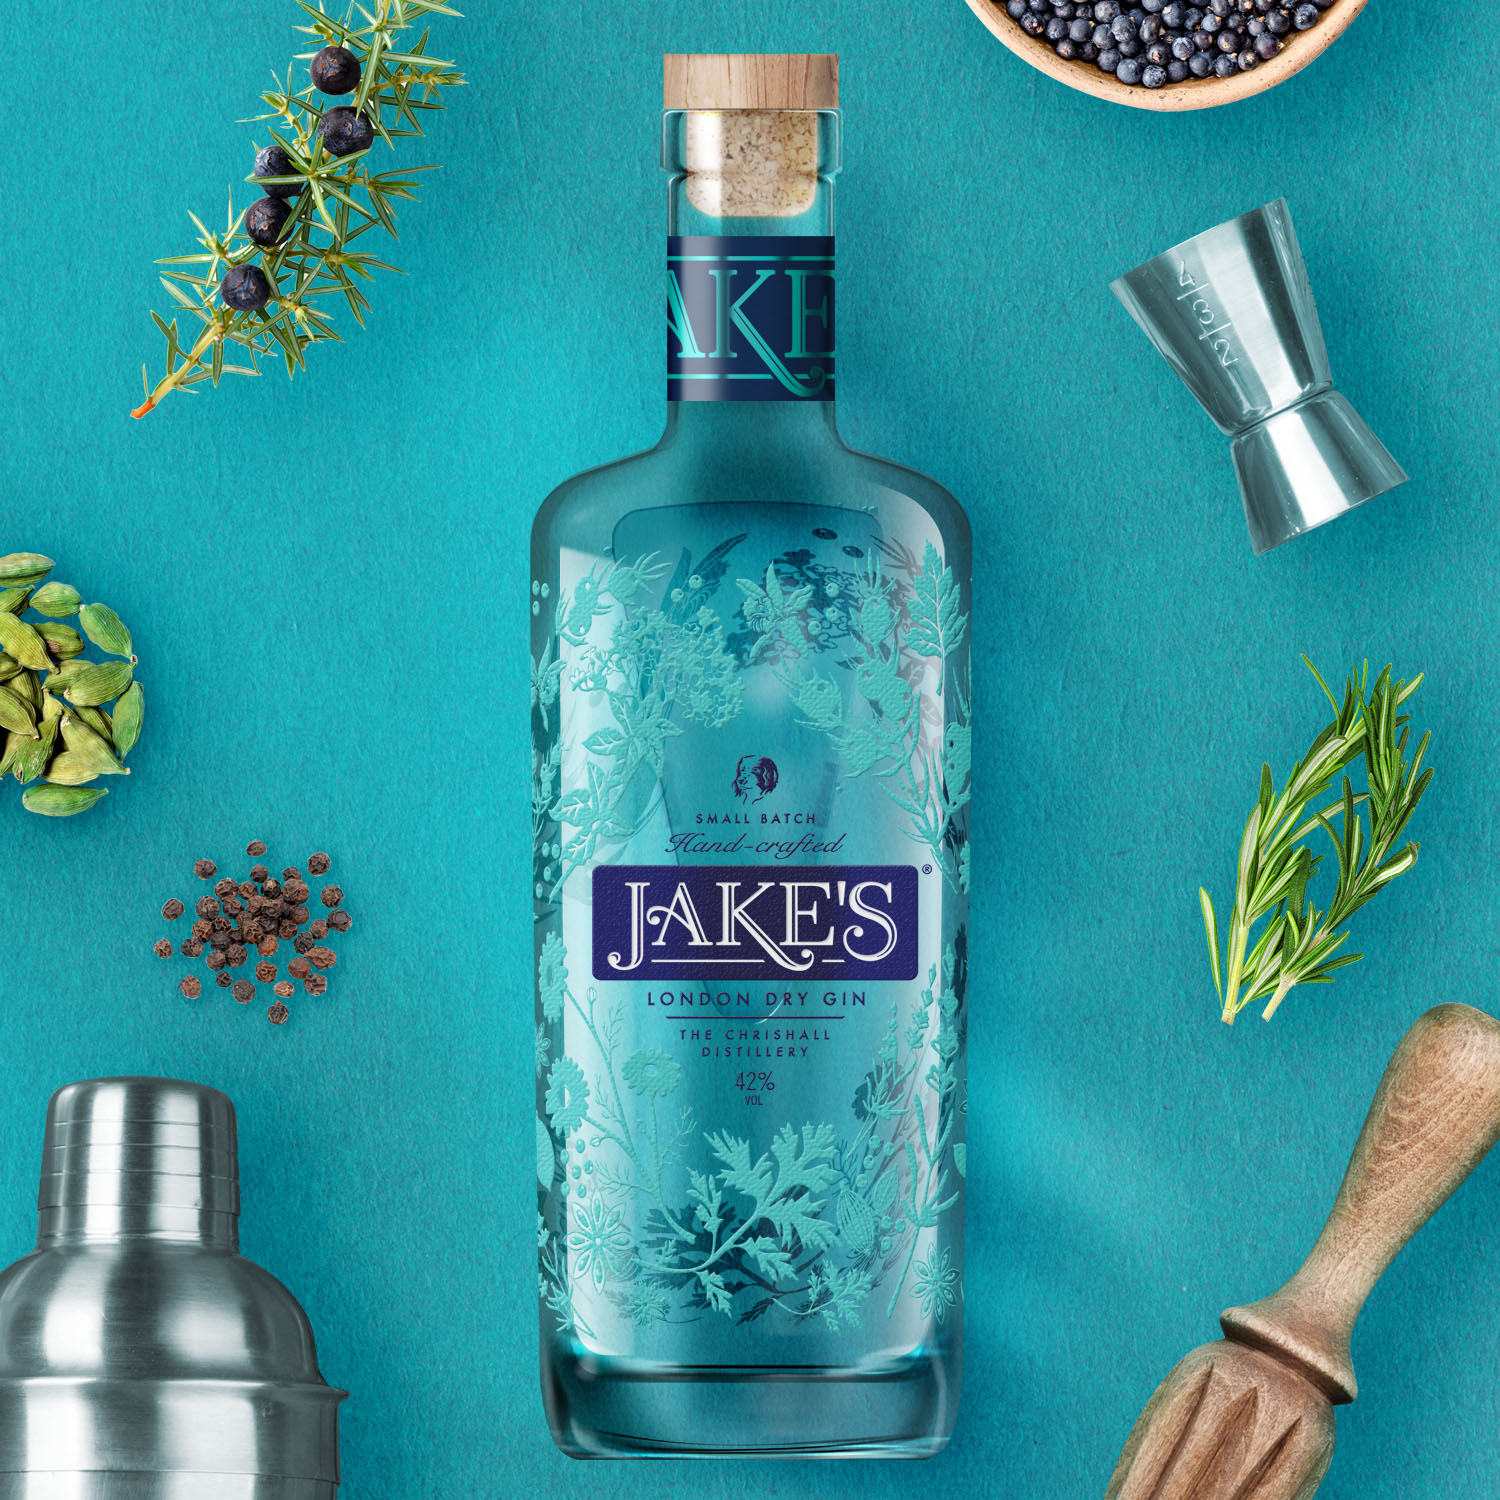 jakes-gin-packaging-square